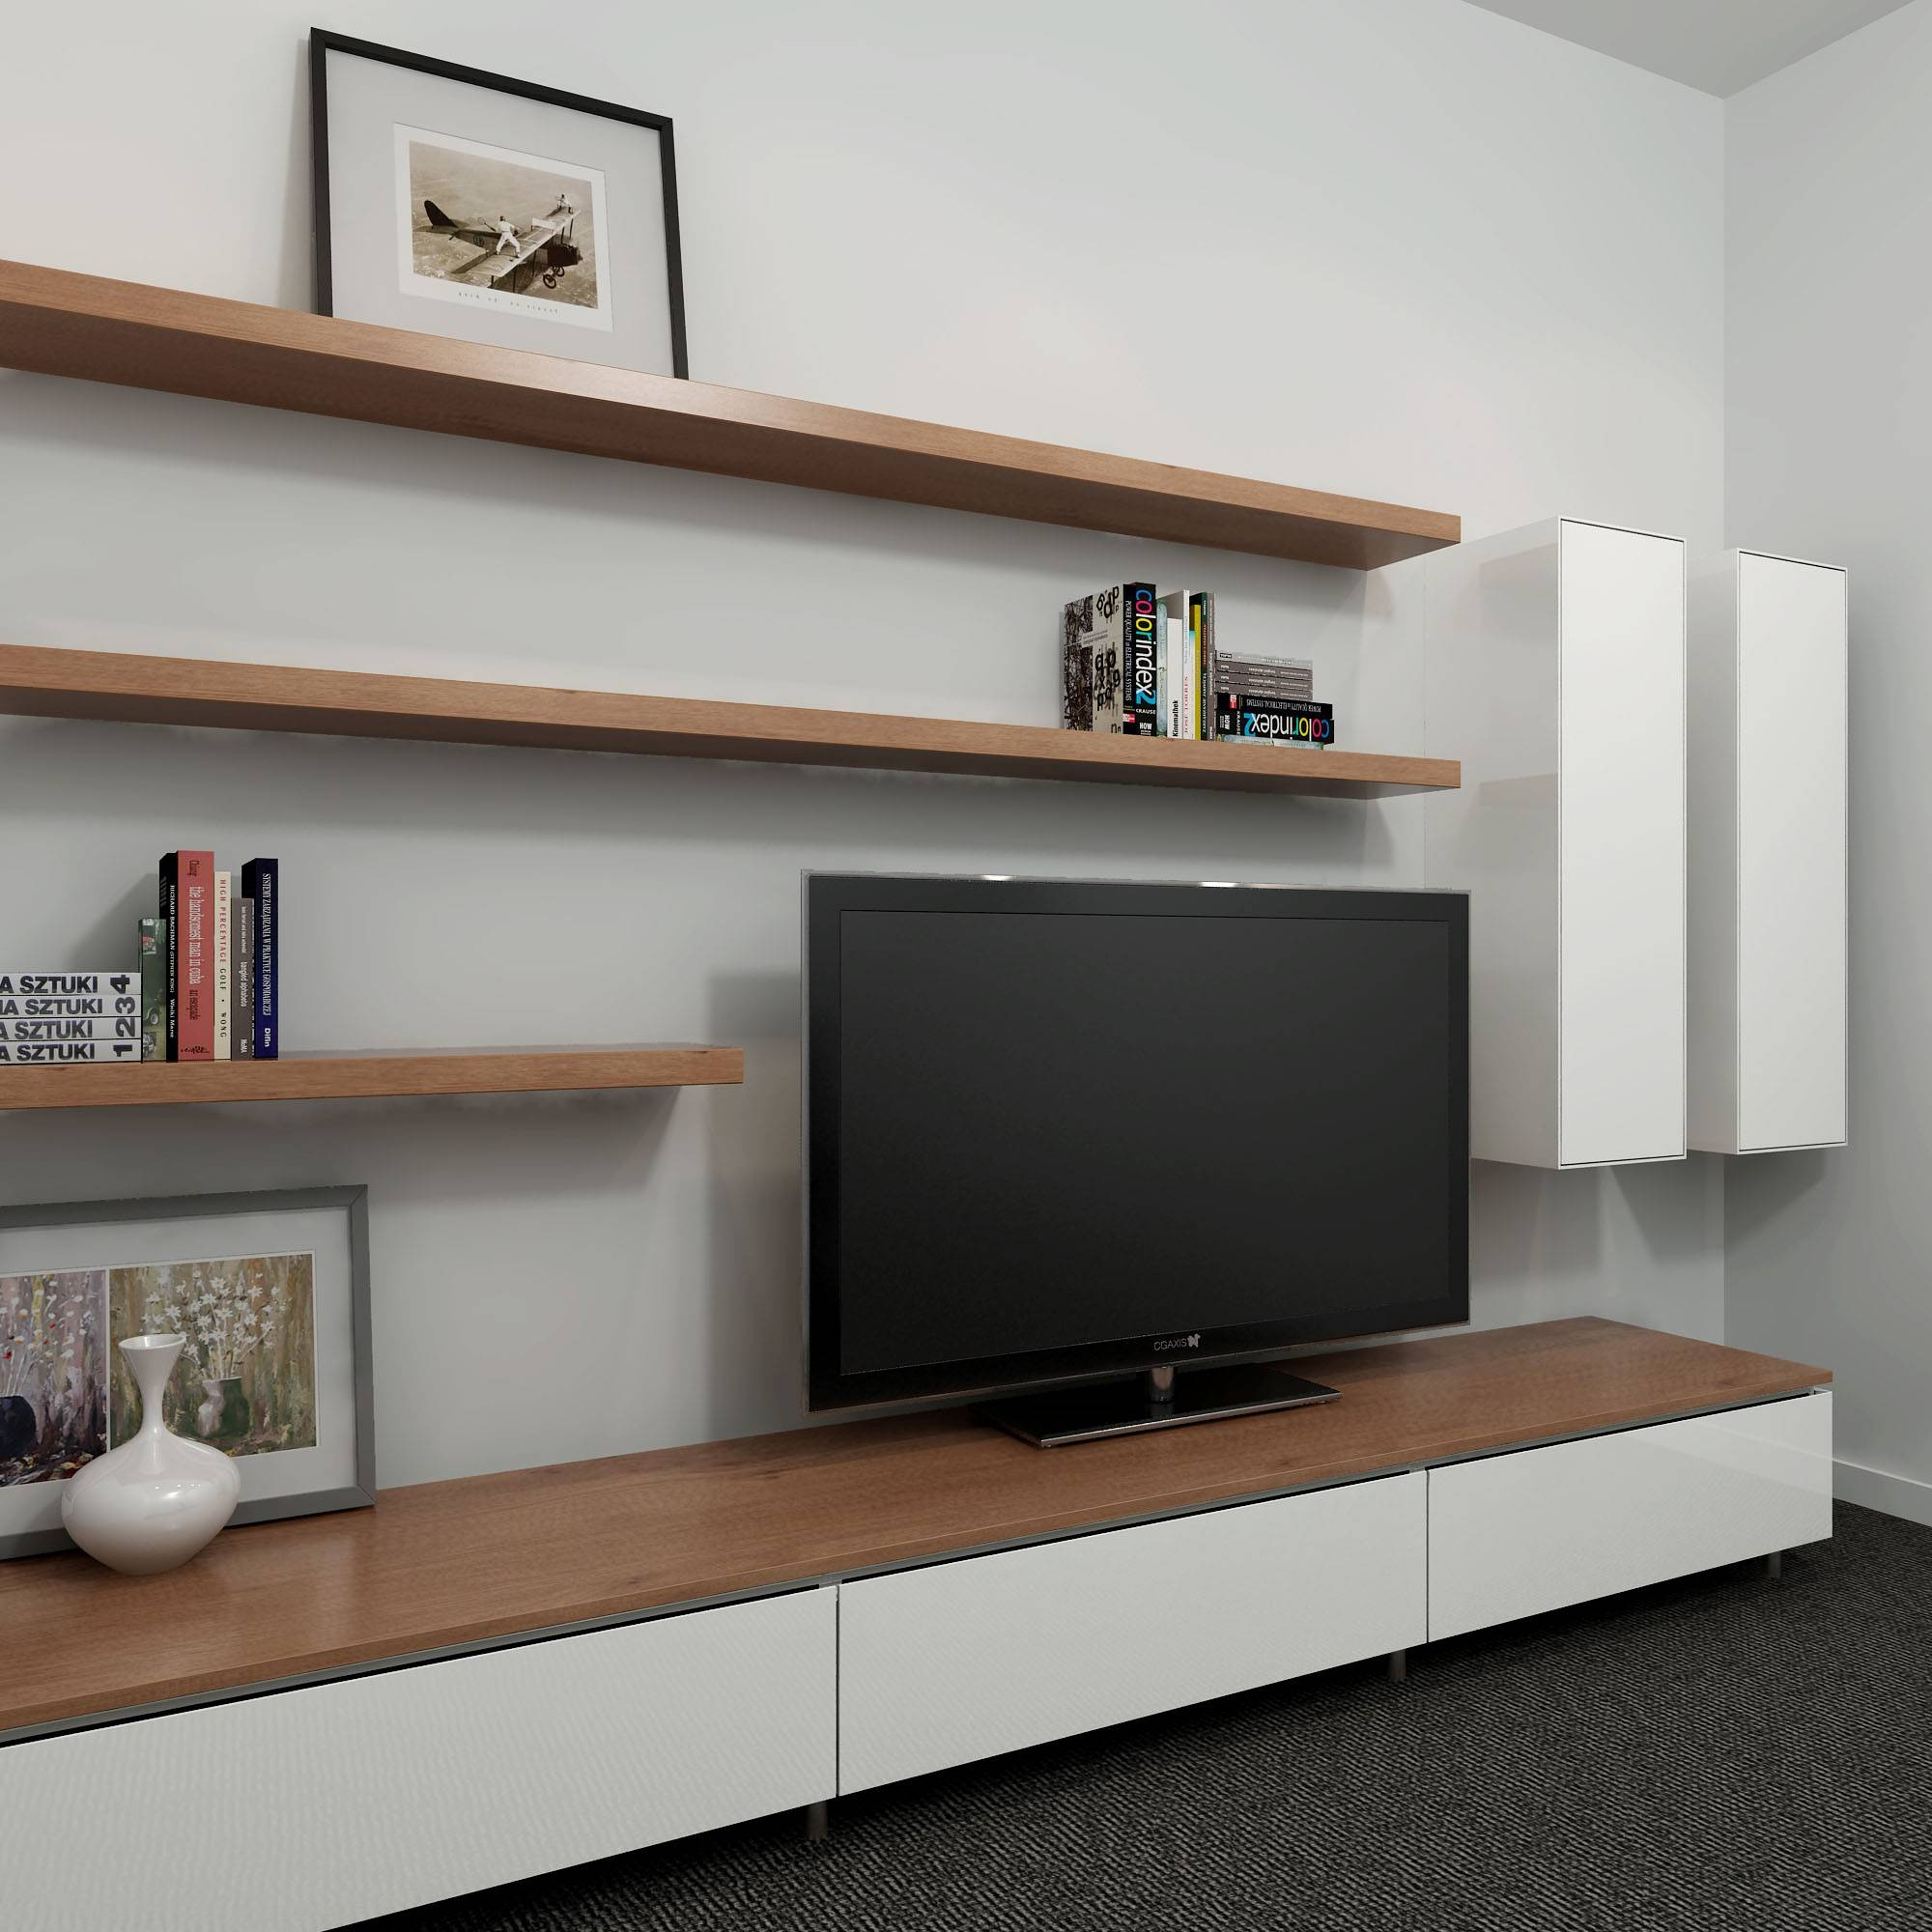 Outstanding Wall Mounted Entertainment Shelves Images Ideas intended for Tv Entertainment Unit (Image 6 of 15)